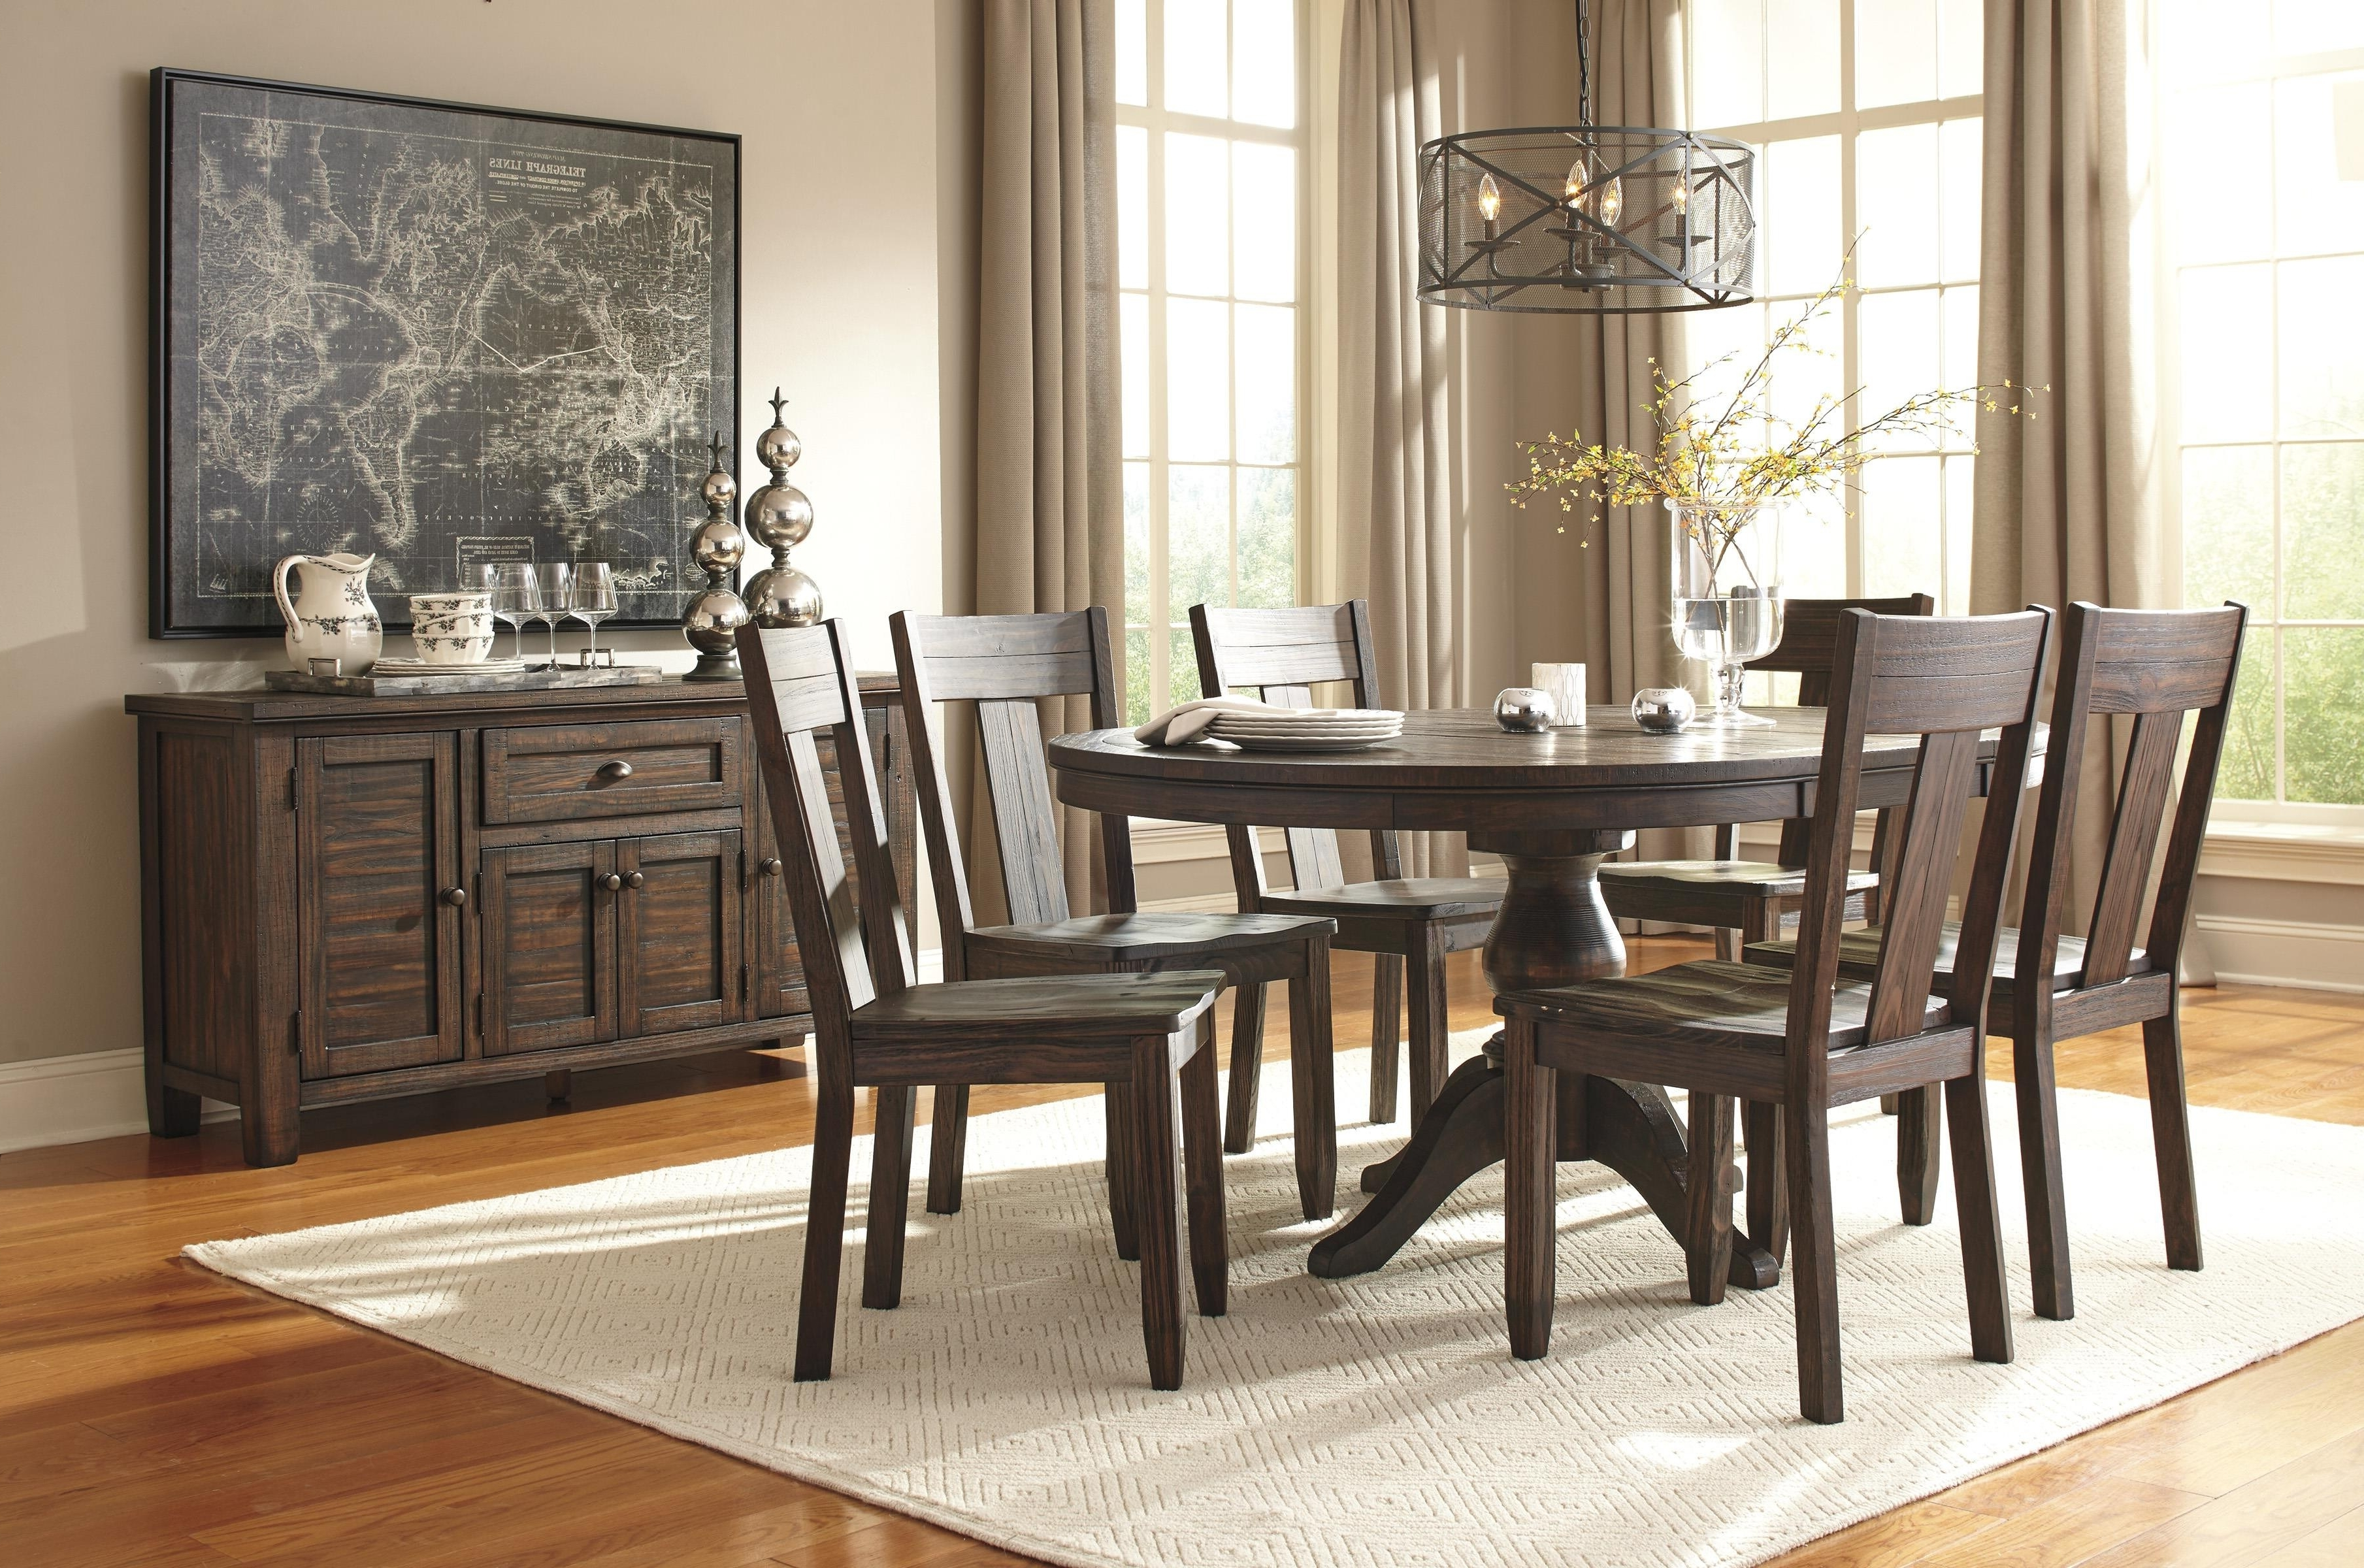 Newest Tempting Table Piece Set Partridge Living Spaces Decor Table Piece With Regard To Caden Round Dining Tables (View 18 of 25)